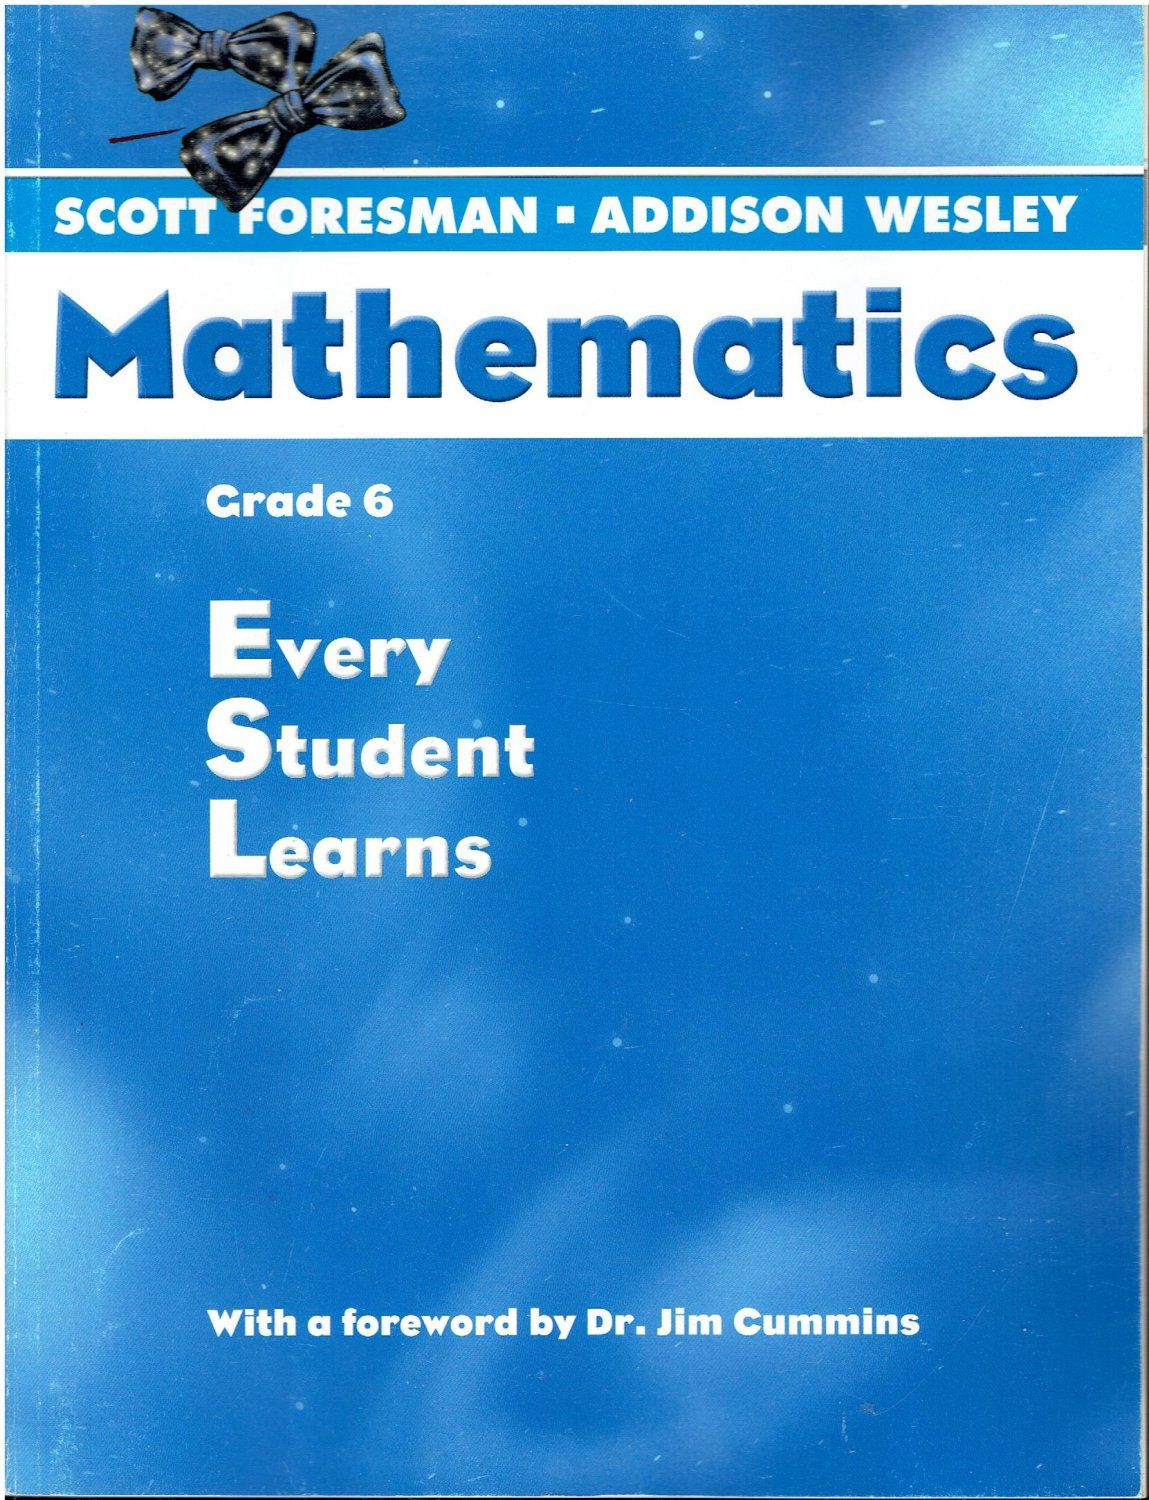 Scott Foresman Addison Wesley Mathematics Grade 6 Every Student Learns A C 2004 Isbn 0328075558 Ma2 Student Learning Math Textbook Mathematics